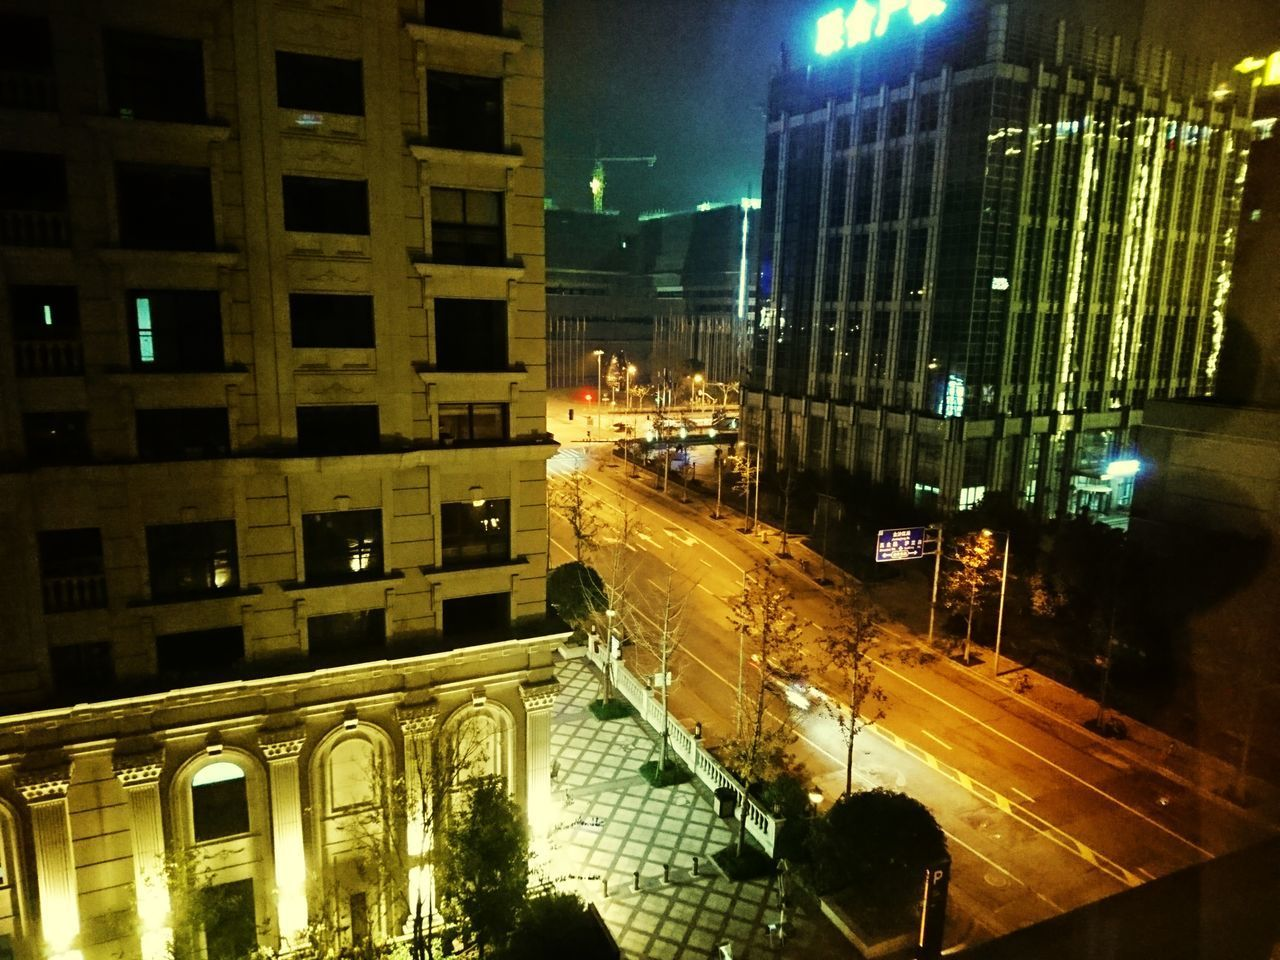 night, building exterior, city, architecture, illuminated, built structure, street, building, city life, transportation, high angle view, city street, cityscape, outdoors, nature, road, incidental people, office building exterior, residential district, office, skyscraper